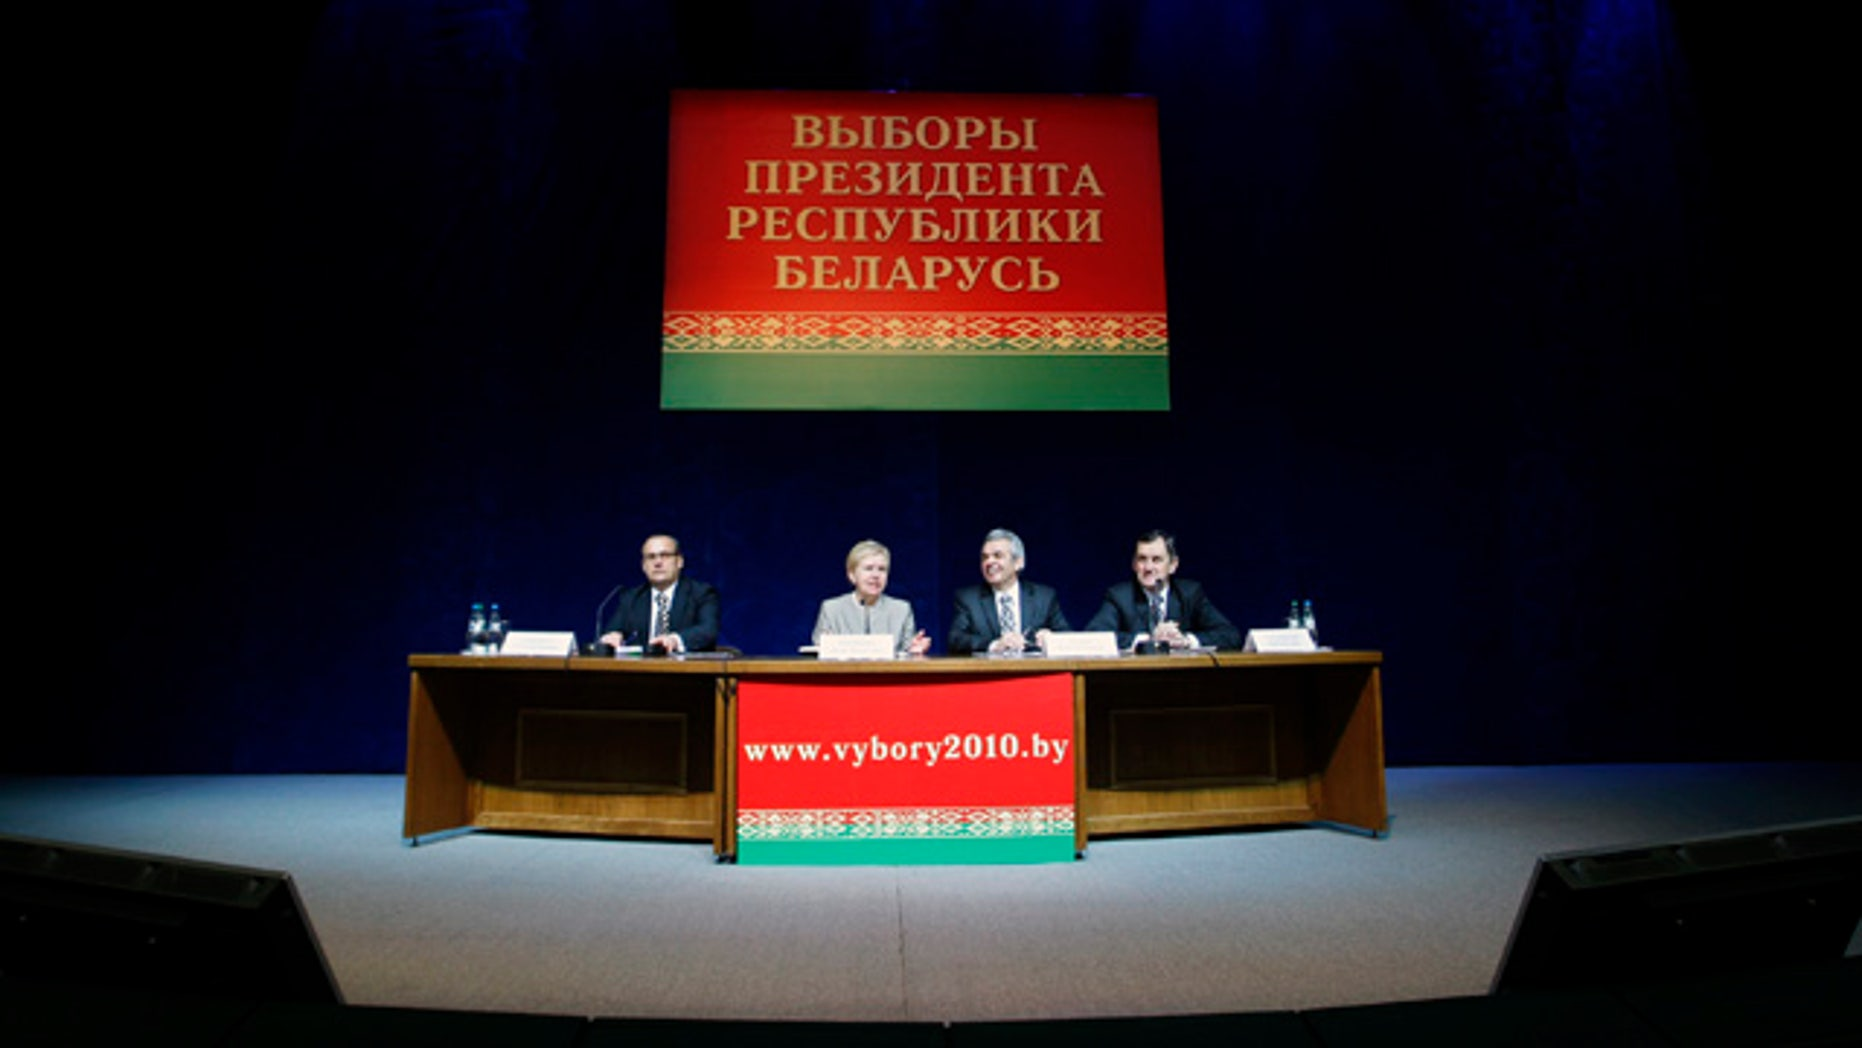 Dec. 20: Central Elections Commission Chairwoman Lidiya Ermoshina, second from left, speaks during a news conference in the Belarusian capital, Minsk. Belarus' President Alexander Lukashenko won a fourth term with nearly 80 percent of the vote, election officials said Monday, hours after truncheon-wielding riot police dispersed thousands of demonstrators who protested alleged vote fraud. (AP)